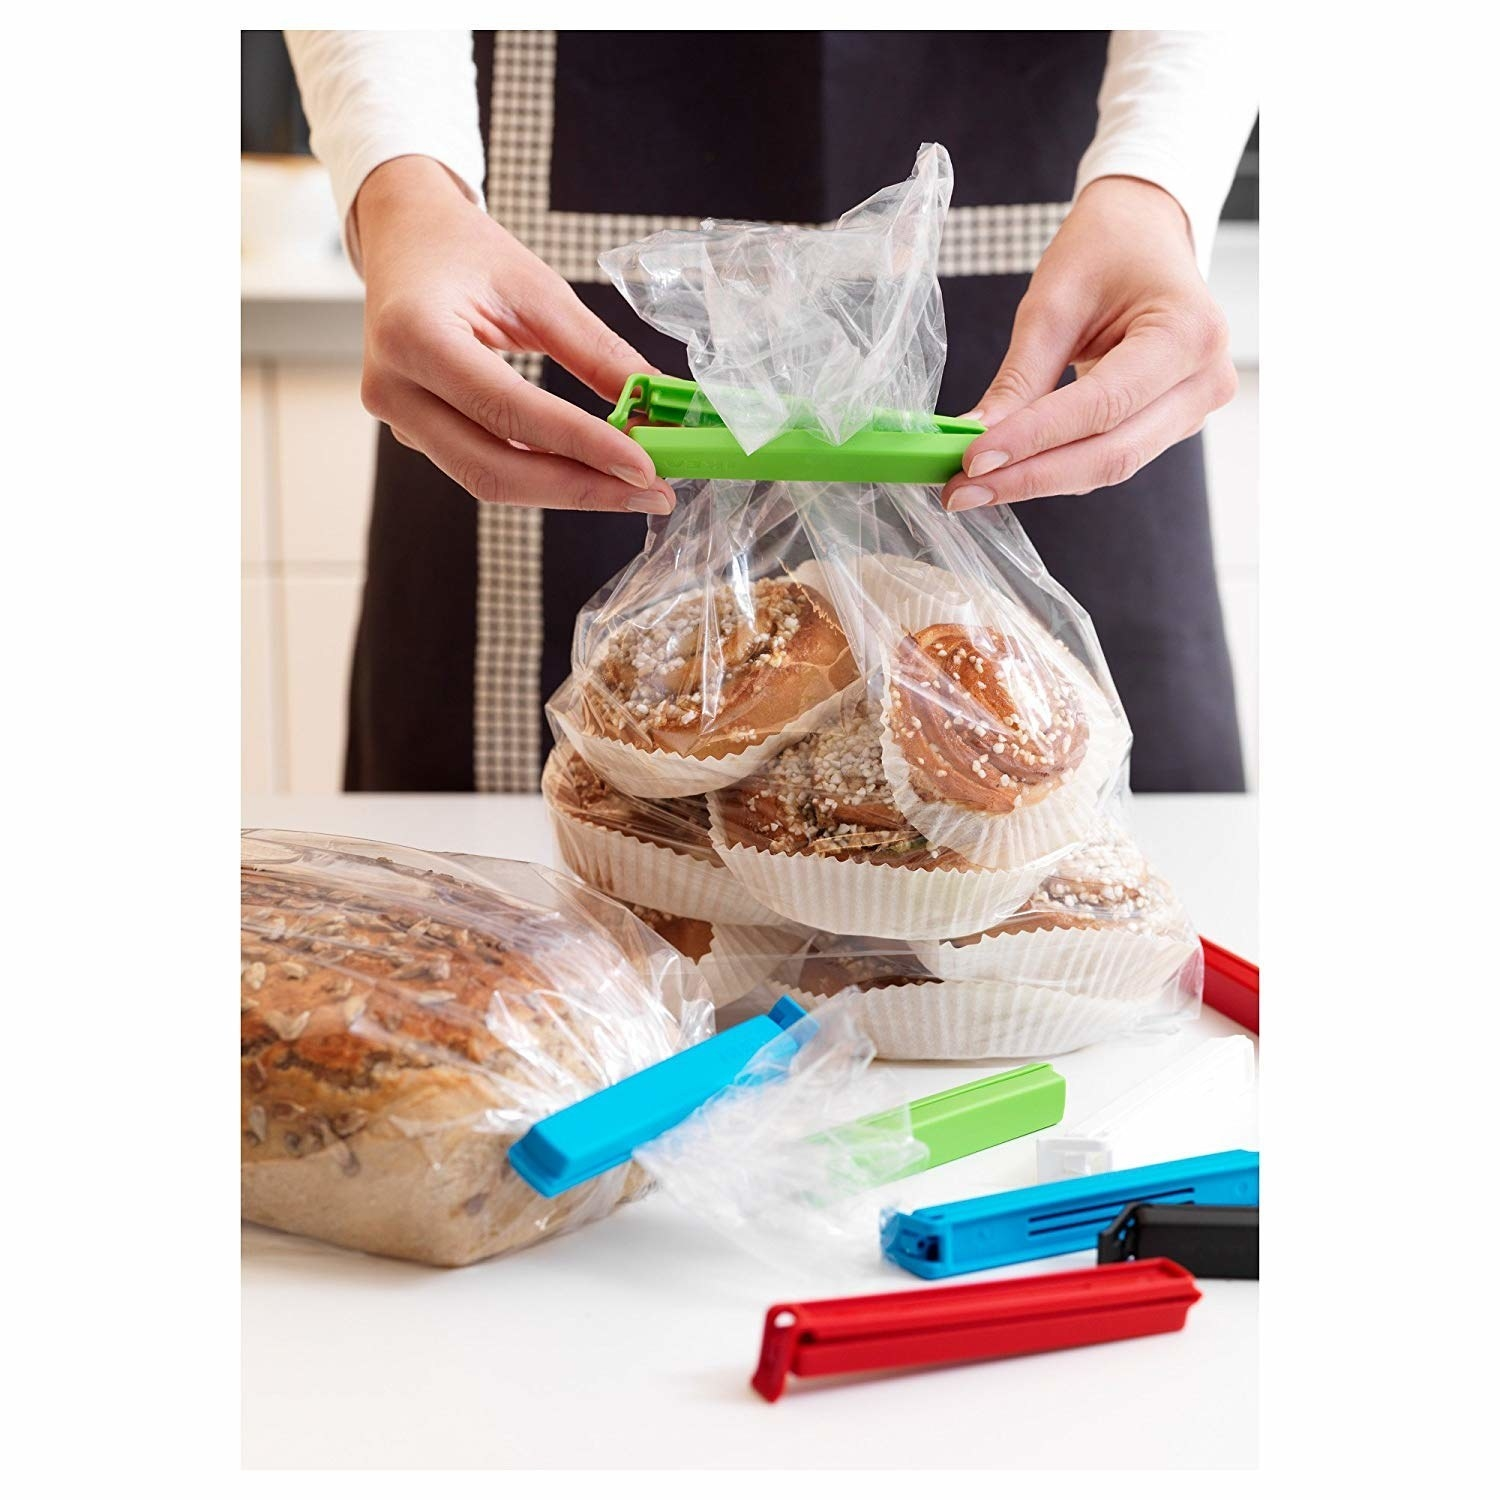 A person using the baggie seals to seal clear plastic bags of food.